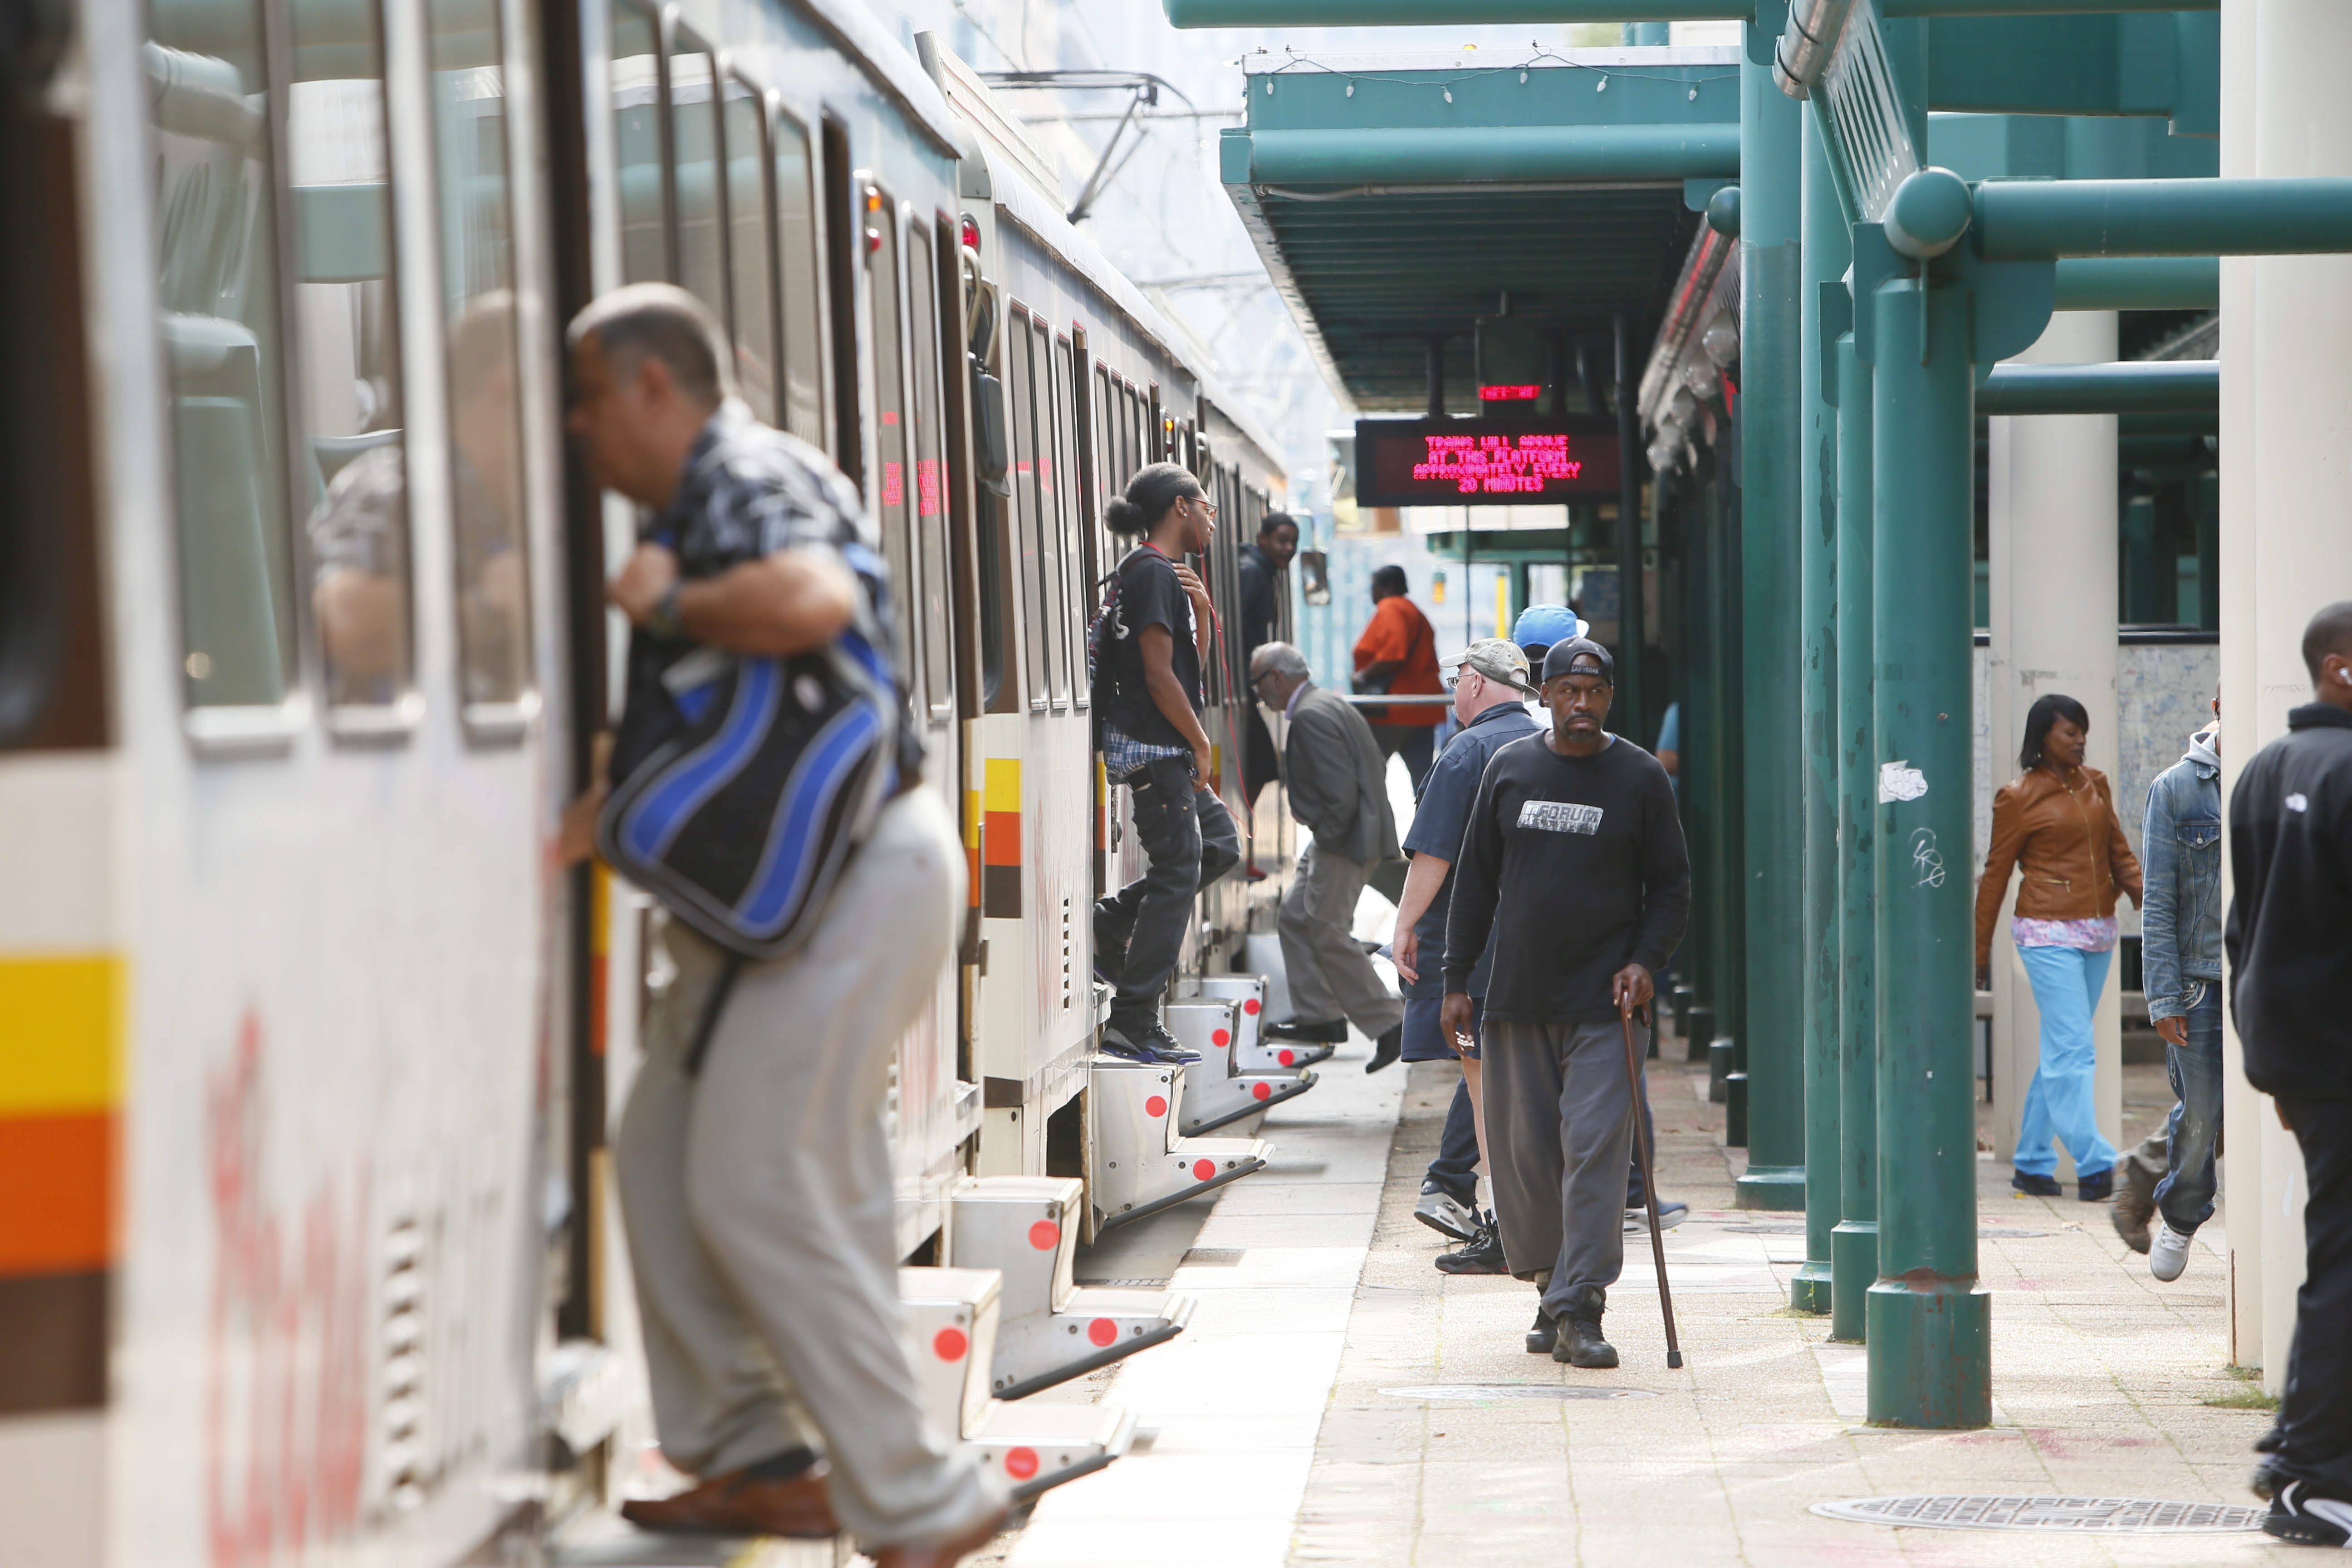 A new report issued by the federal government says the NFTA's fears about drastic service cuts are well-founded.